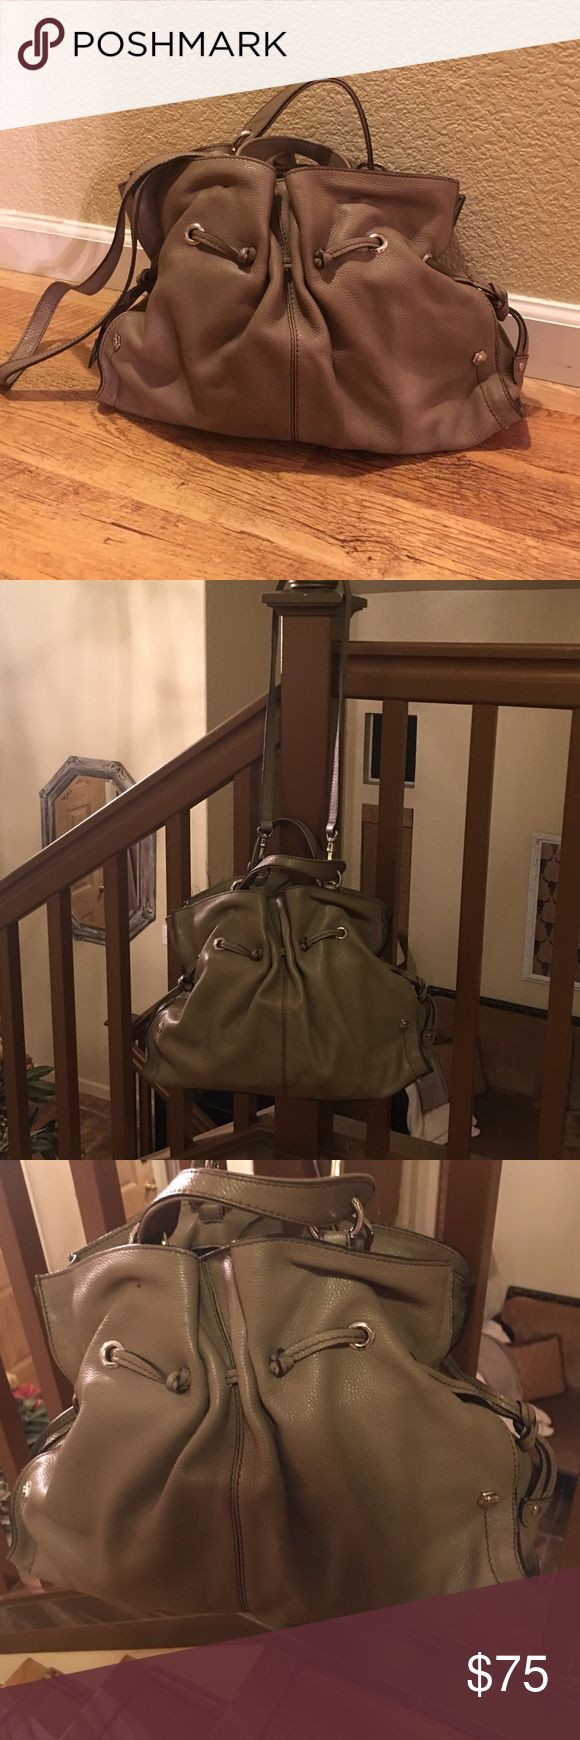 Vera Peli made in Italy and bought in Italy Italian handcrafted purse made in Italy and bought in Italy Full grain leather has a long strap. vera pelle Bags Totes